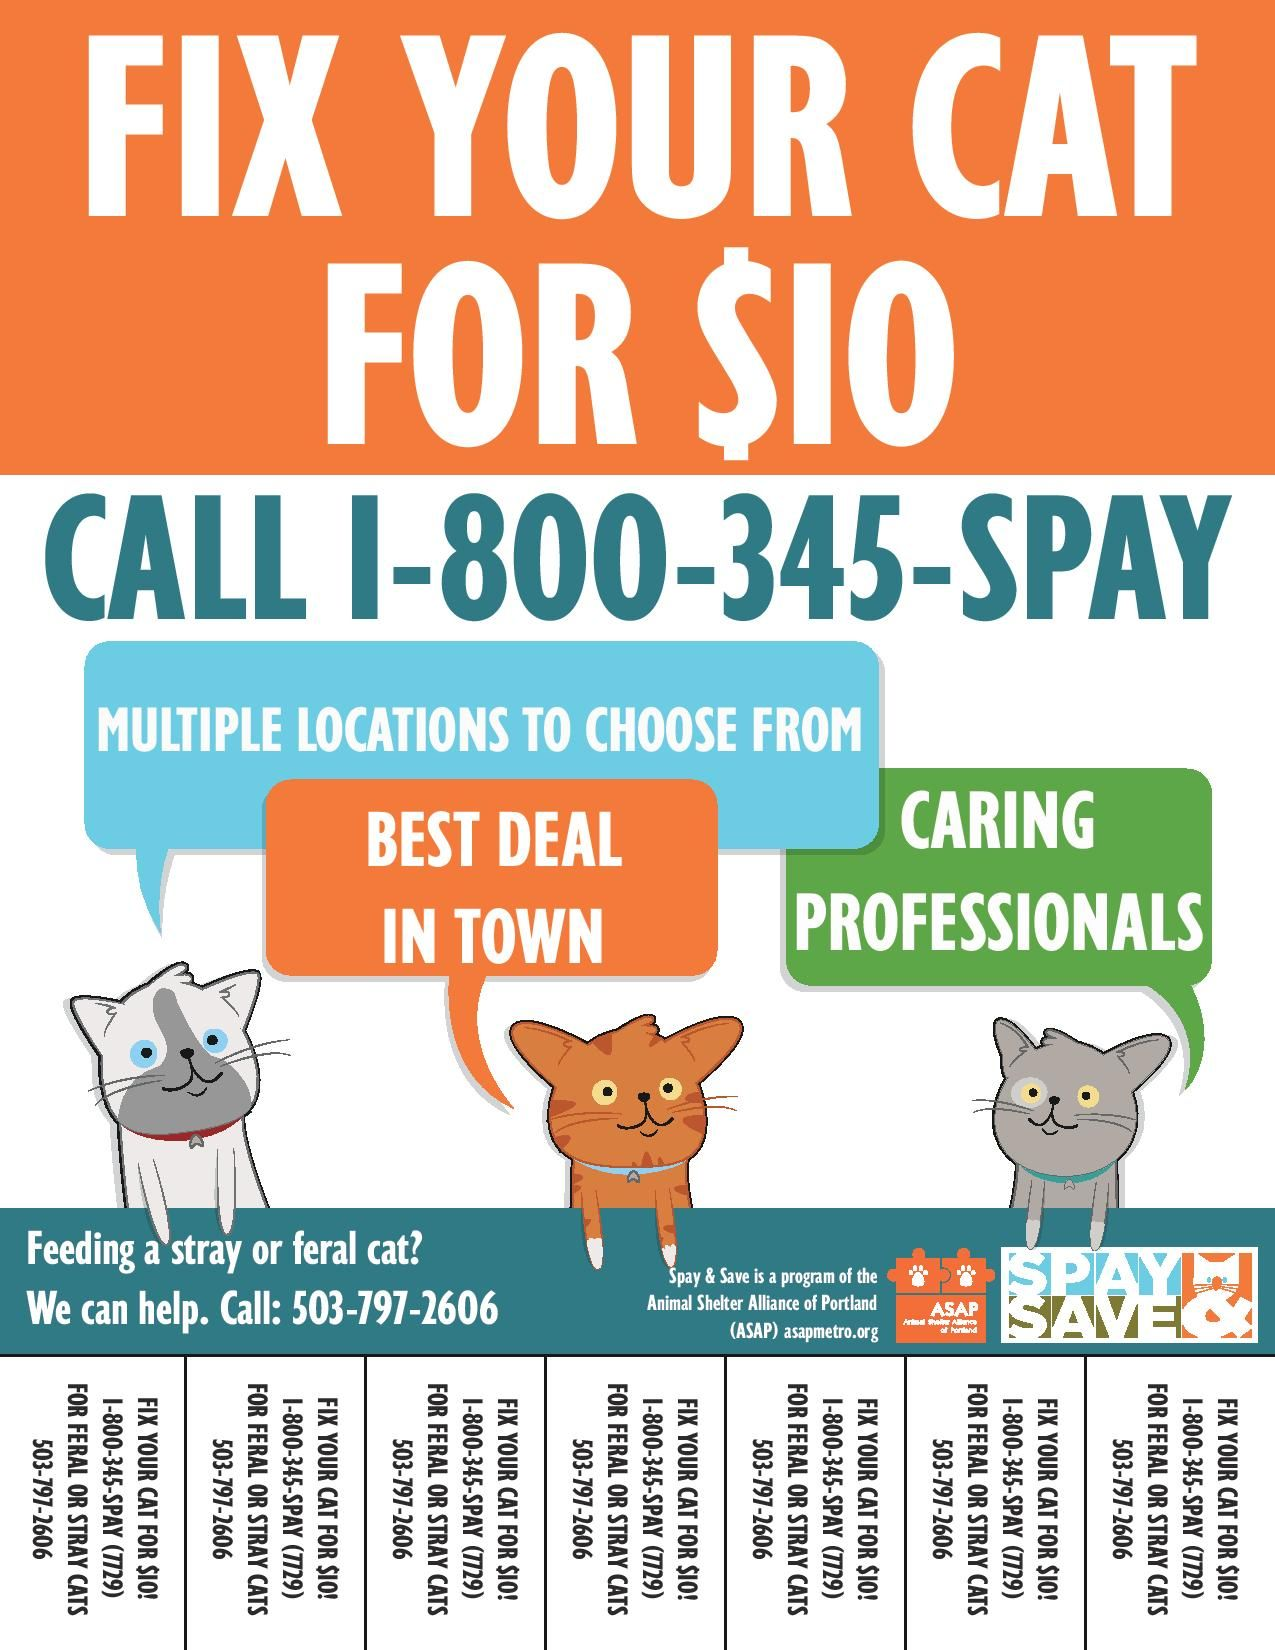 More spay/neuter specials in the Portland area! In fact